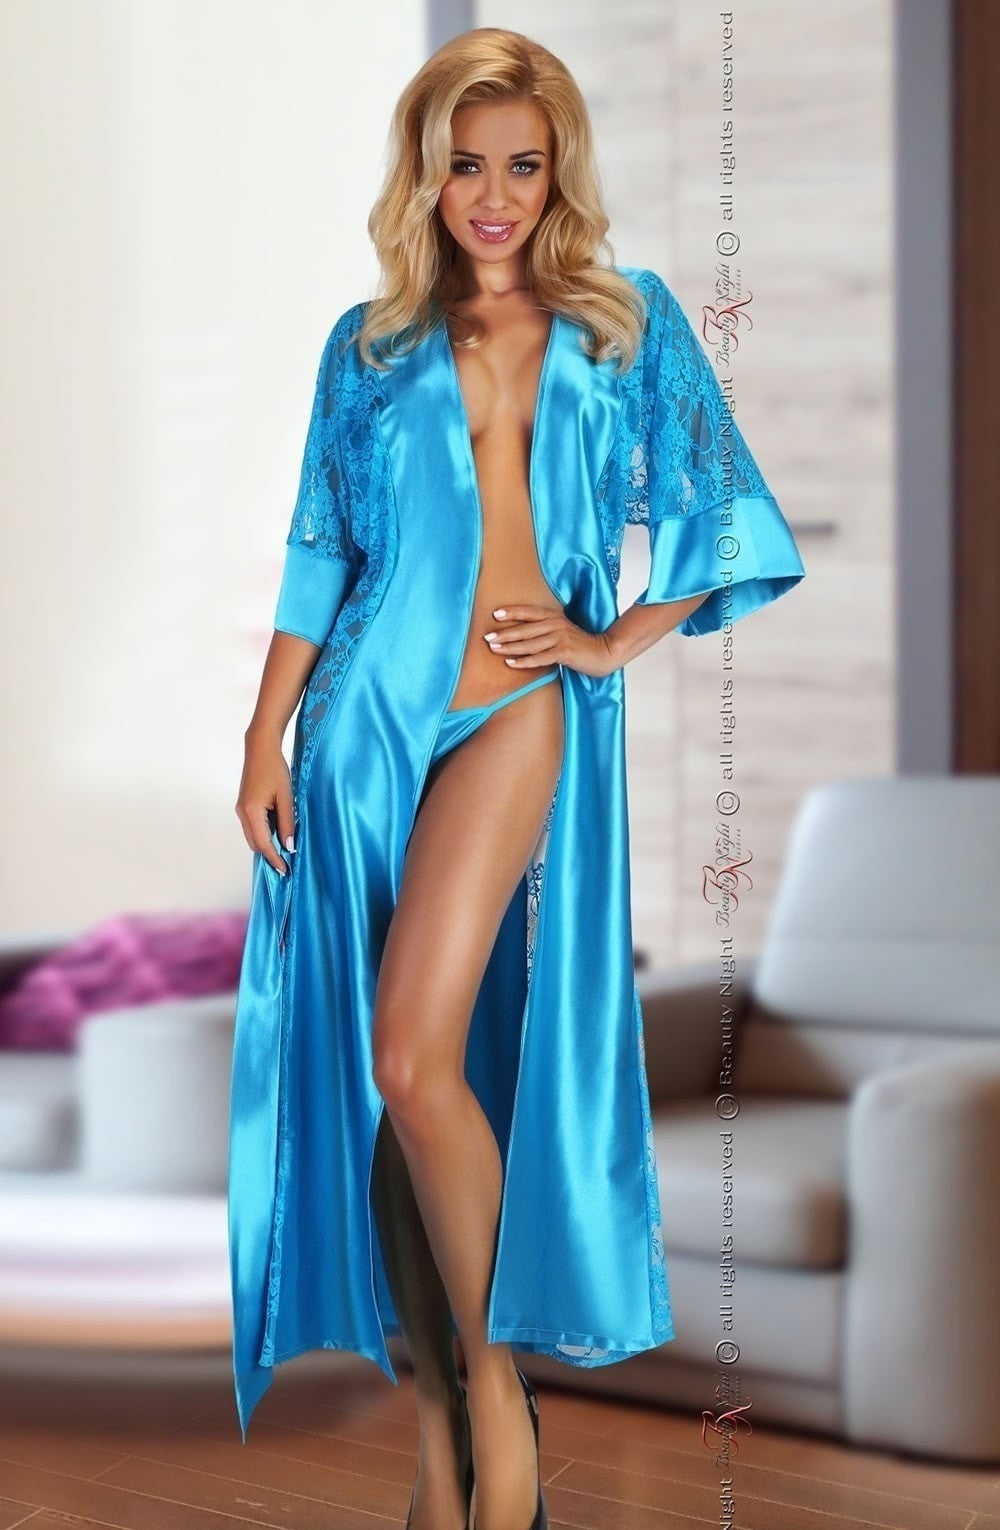 Beauty Night Bouquet Dressing Gown (Turquoise) at Charm and Lace ...